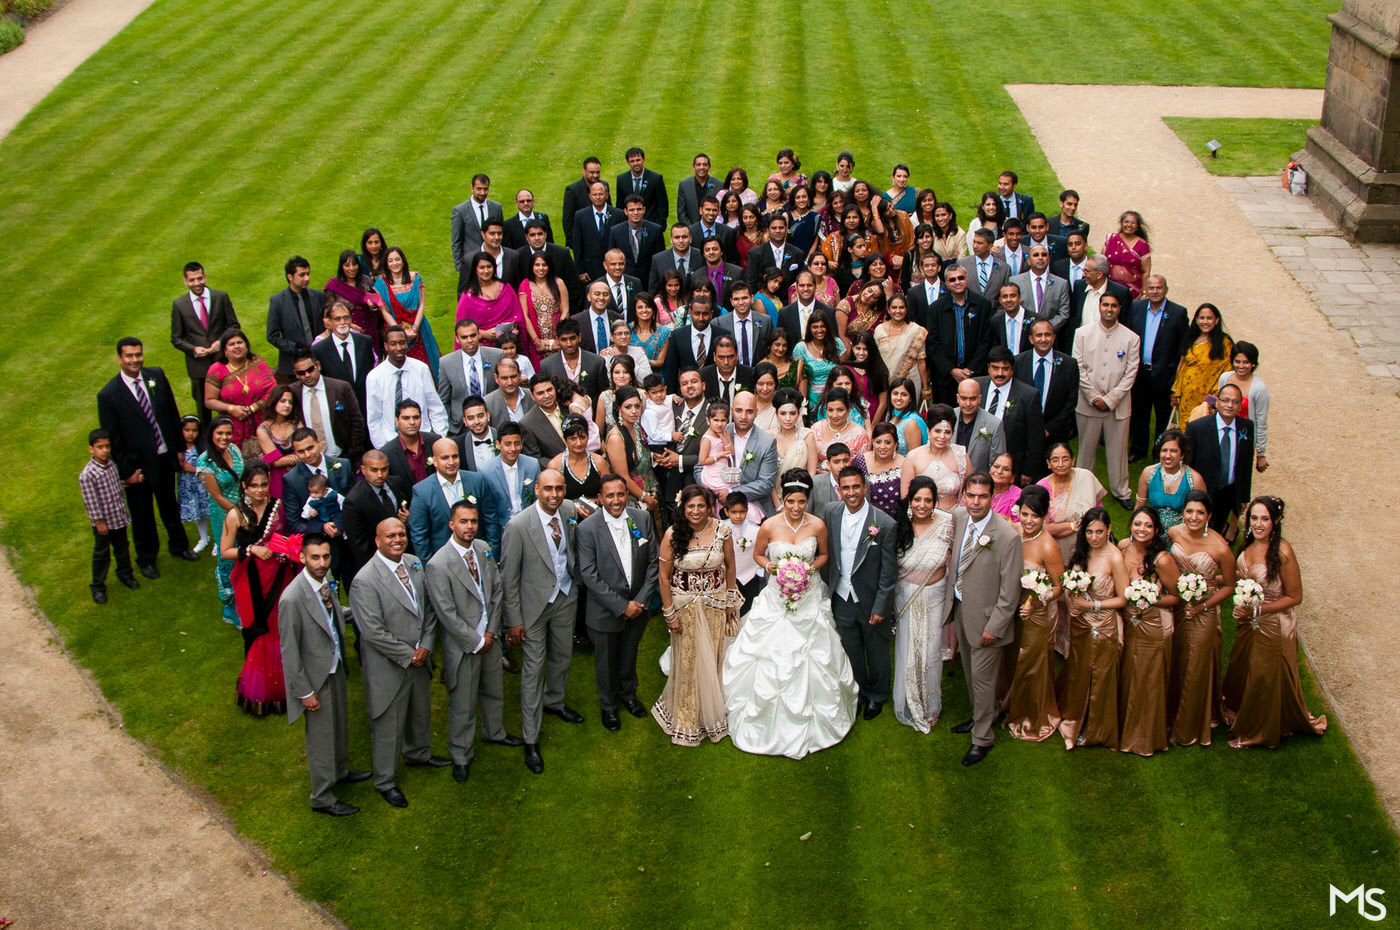 Bolsover-Castle-Indian-wedding - 16_DSC_4810.jpg